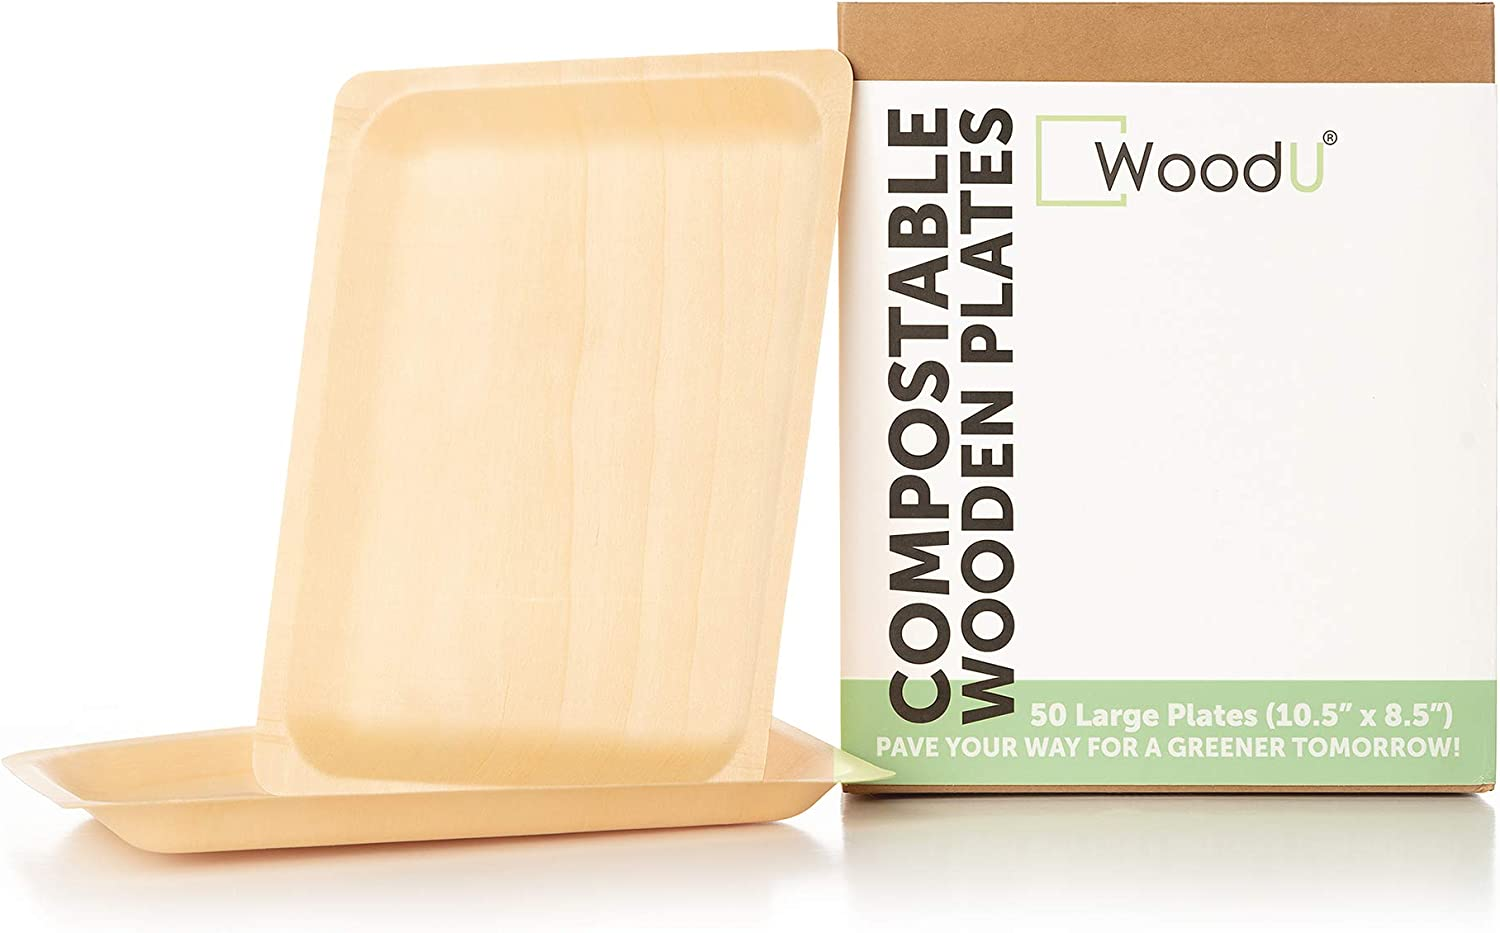 Eco Friendly All Natural Premium quality 100% Compostable & Biodegradable Birch Wood Disposable Plates for Parties, wedding, Events (10.5